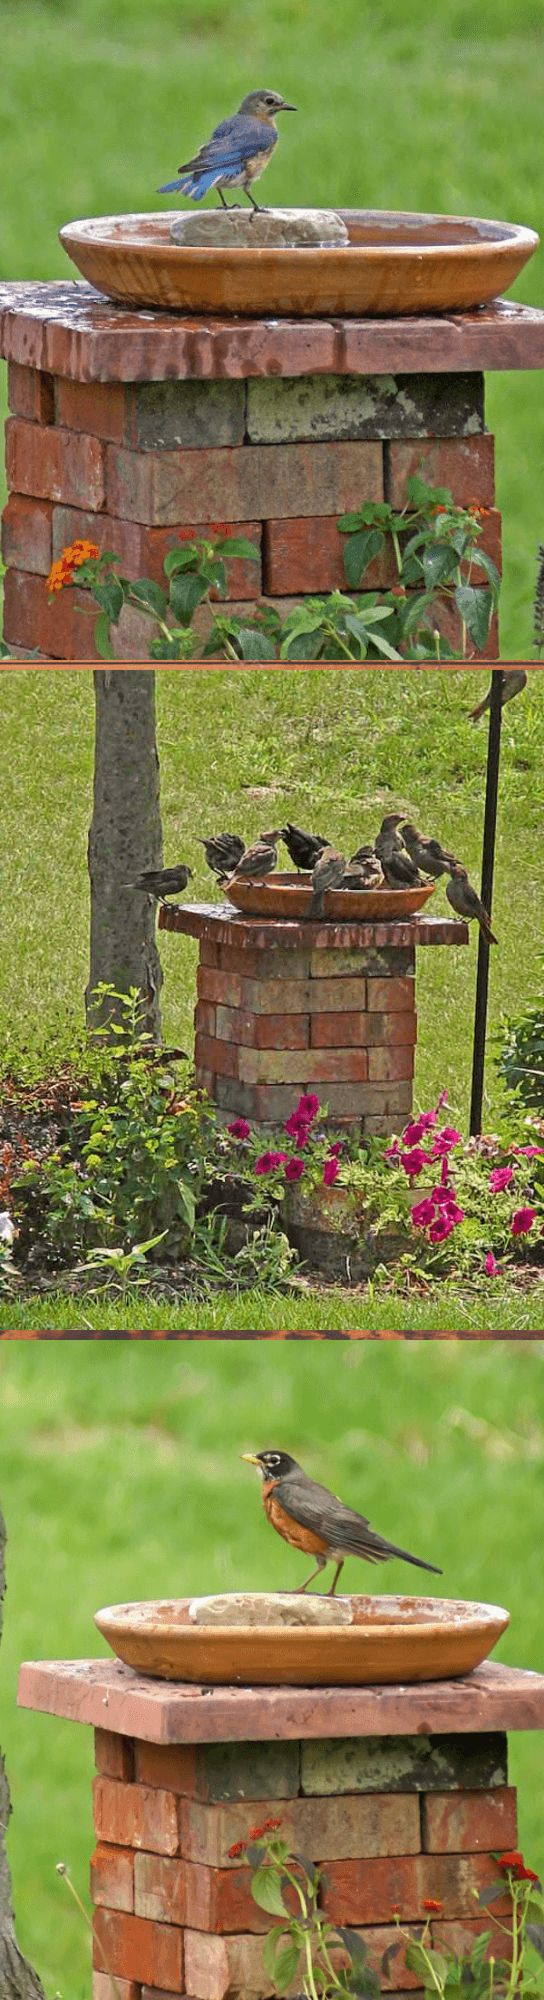 Bird bath stand from bricks | Creative Ways To Use Old Bricks In Your Garden #re...